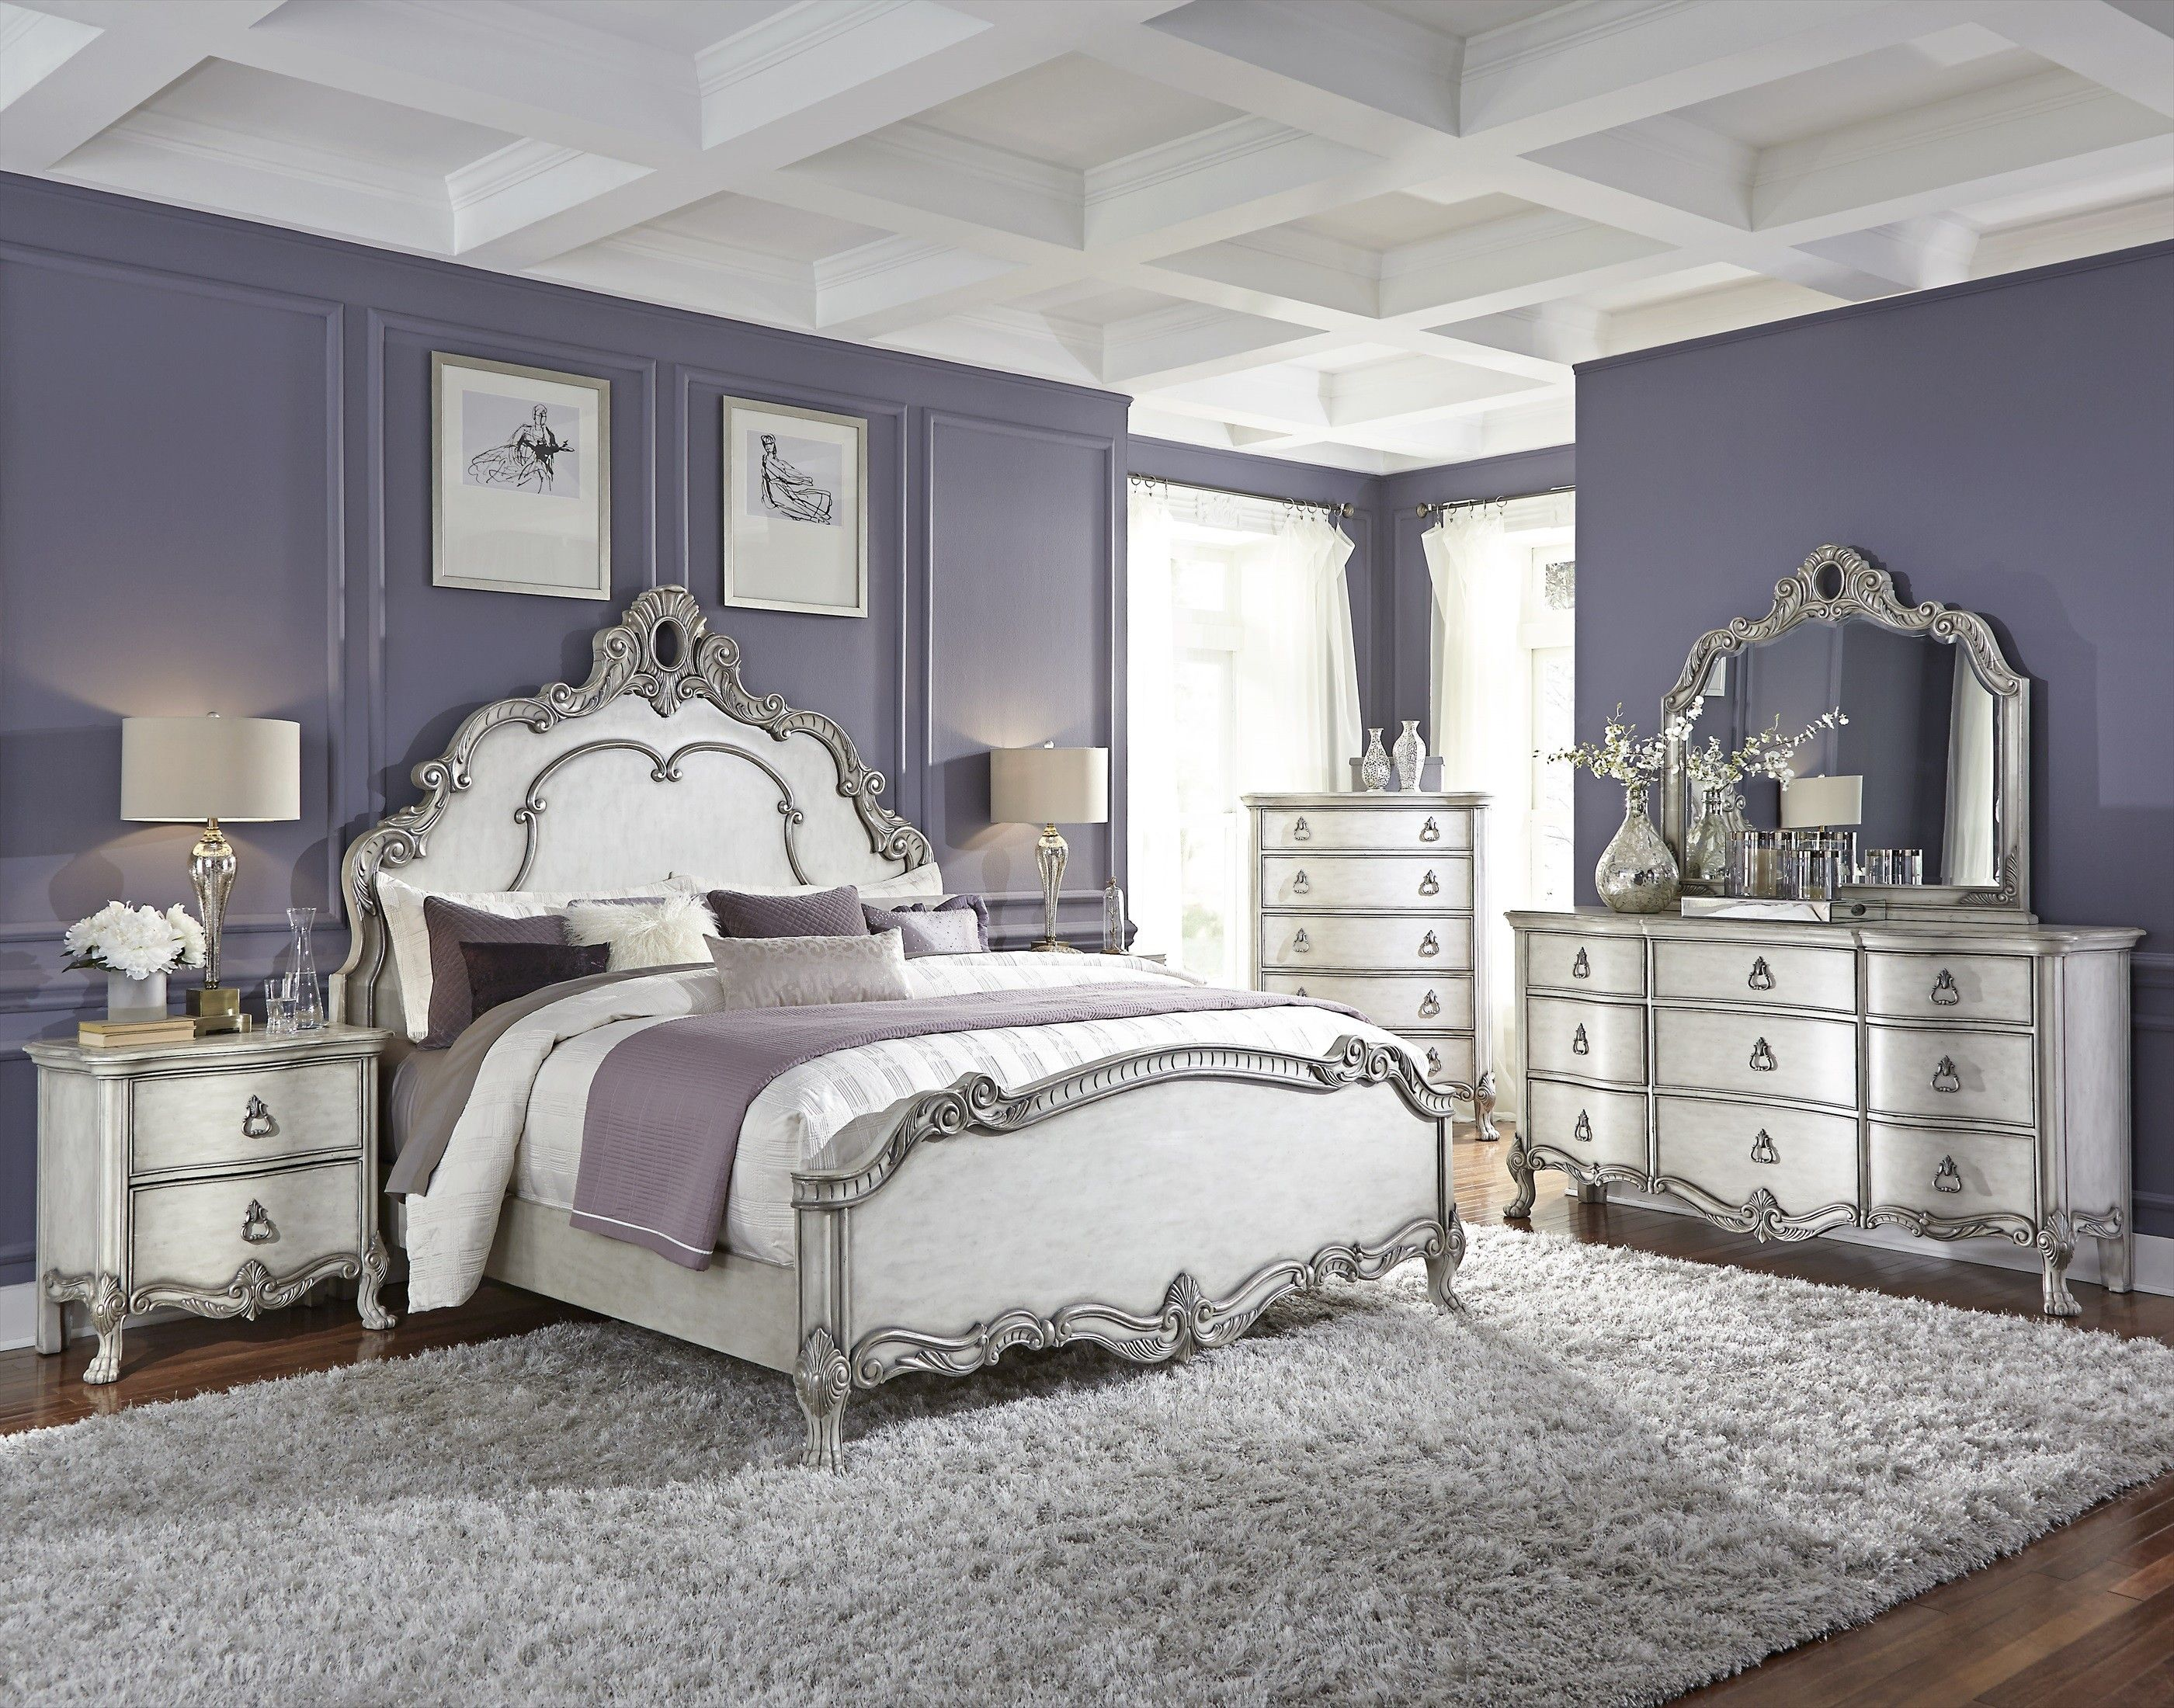 sage satin my feel set are silver elder branch premium in bedroom pin tranquil finish new painted walls restoration grey like gray furniture boll sherwin is wood hardware white bedding summer green williams blue from spa